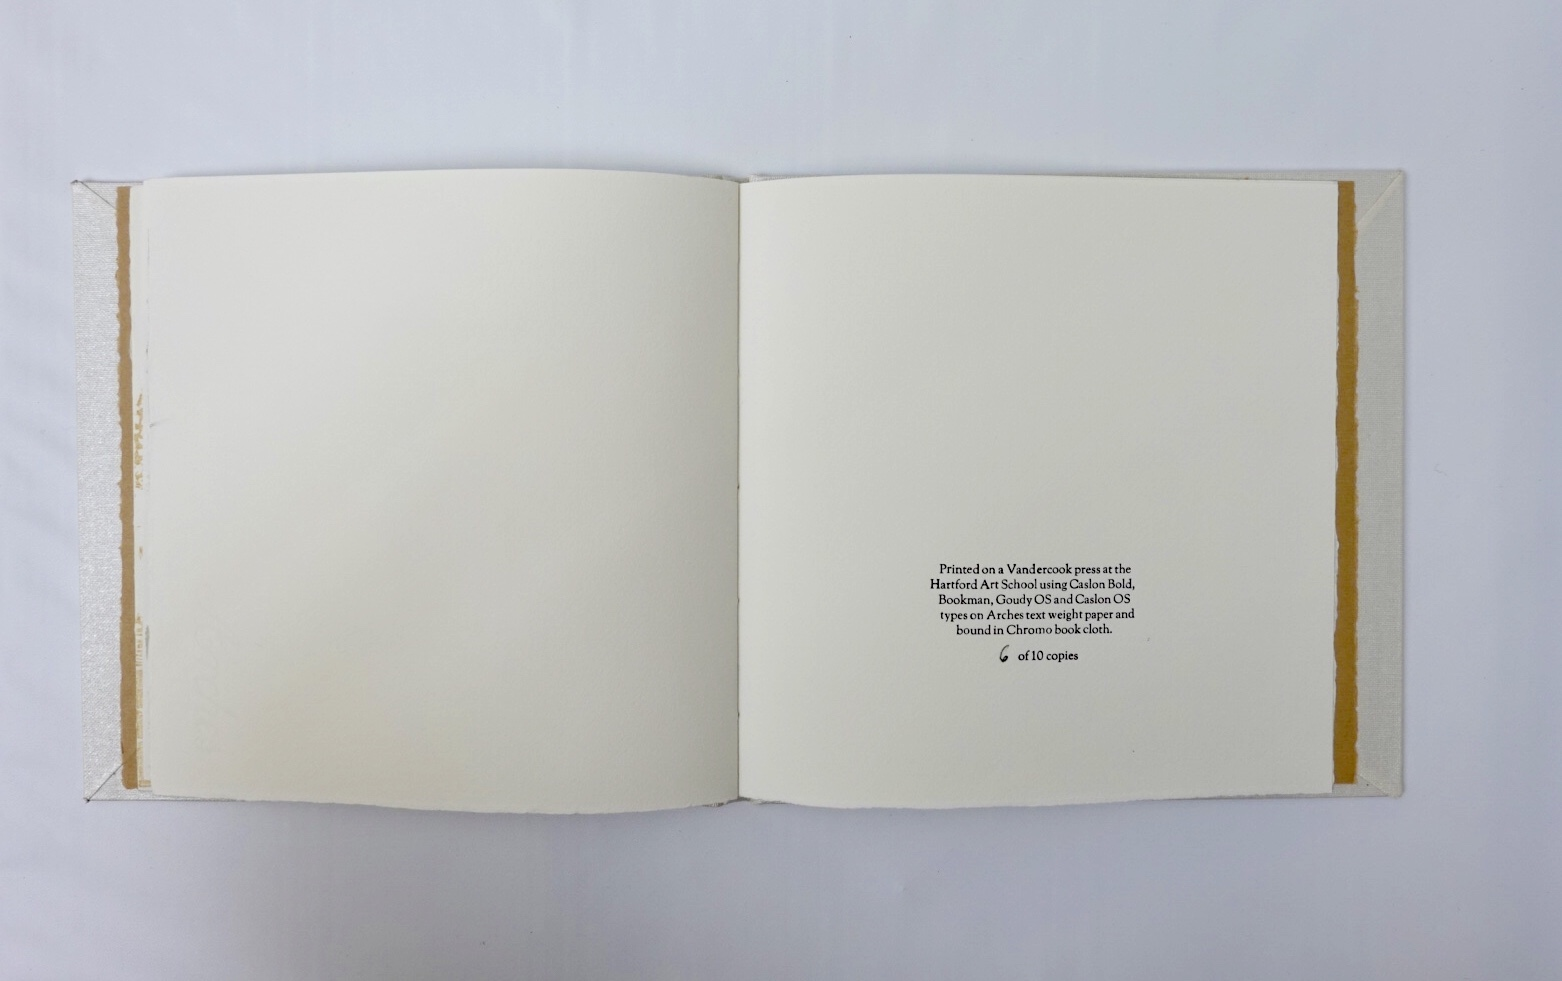 colophon at end of book